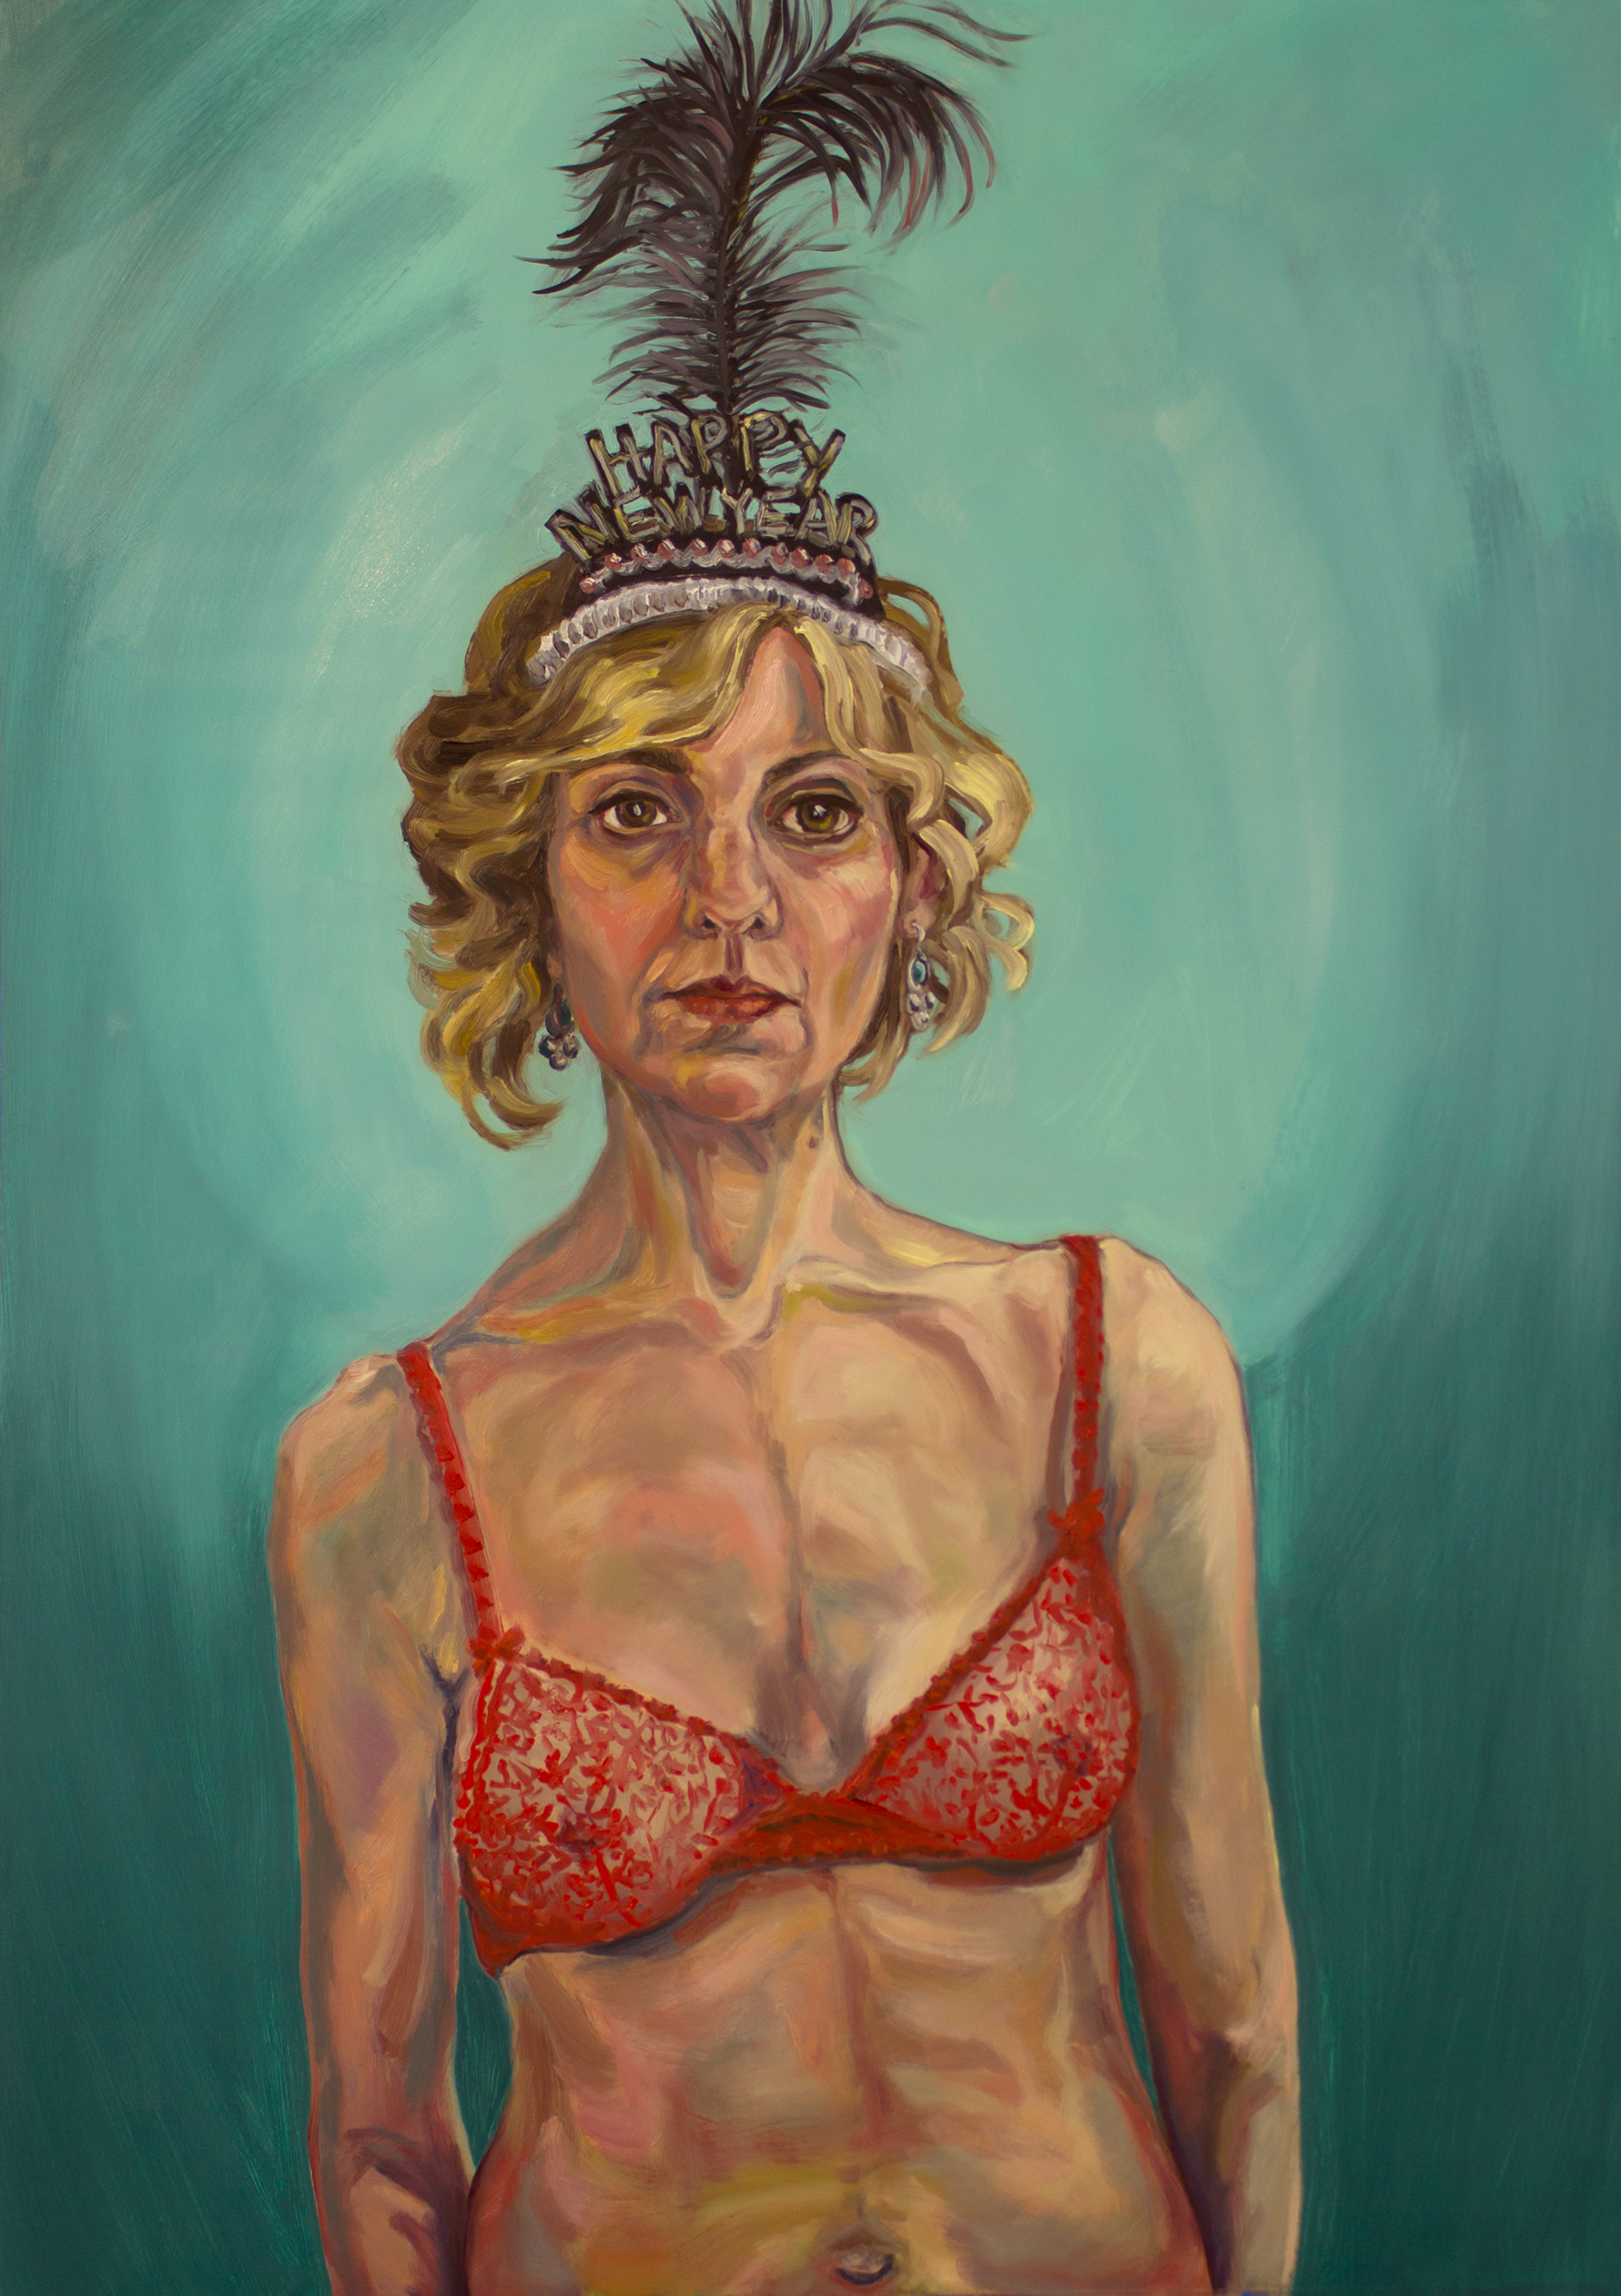 Self Portrait as Showgirl